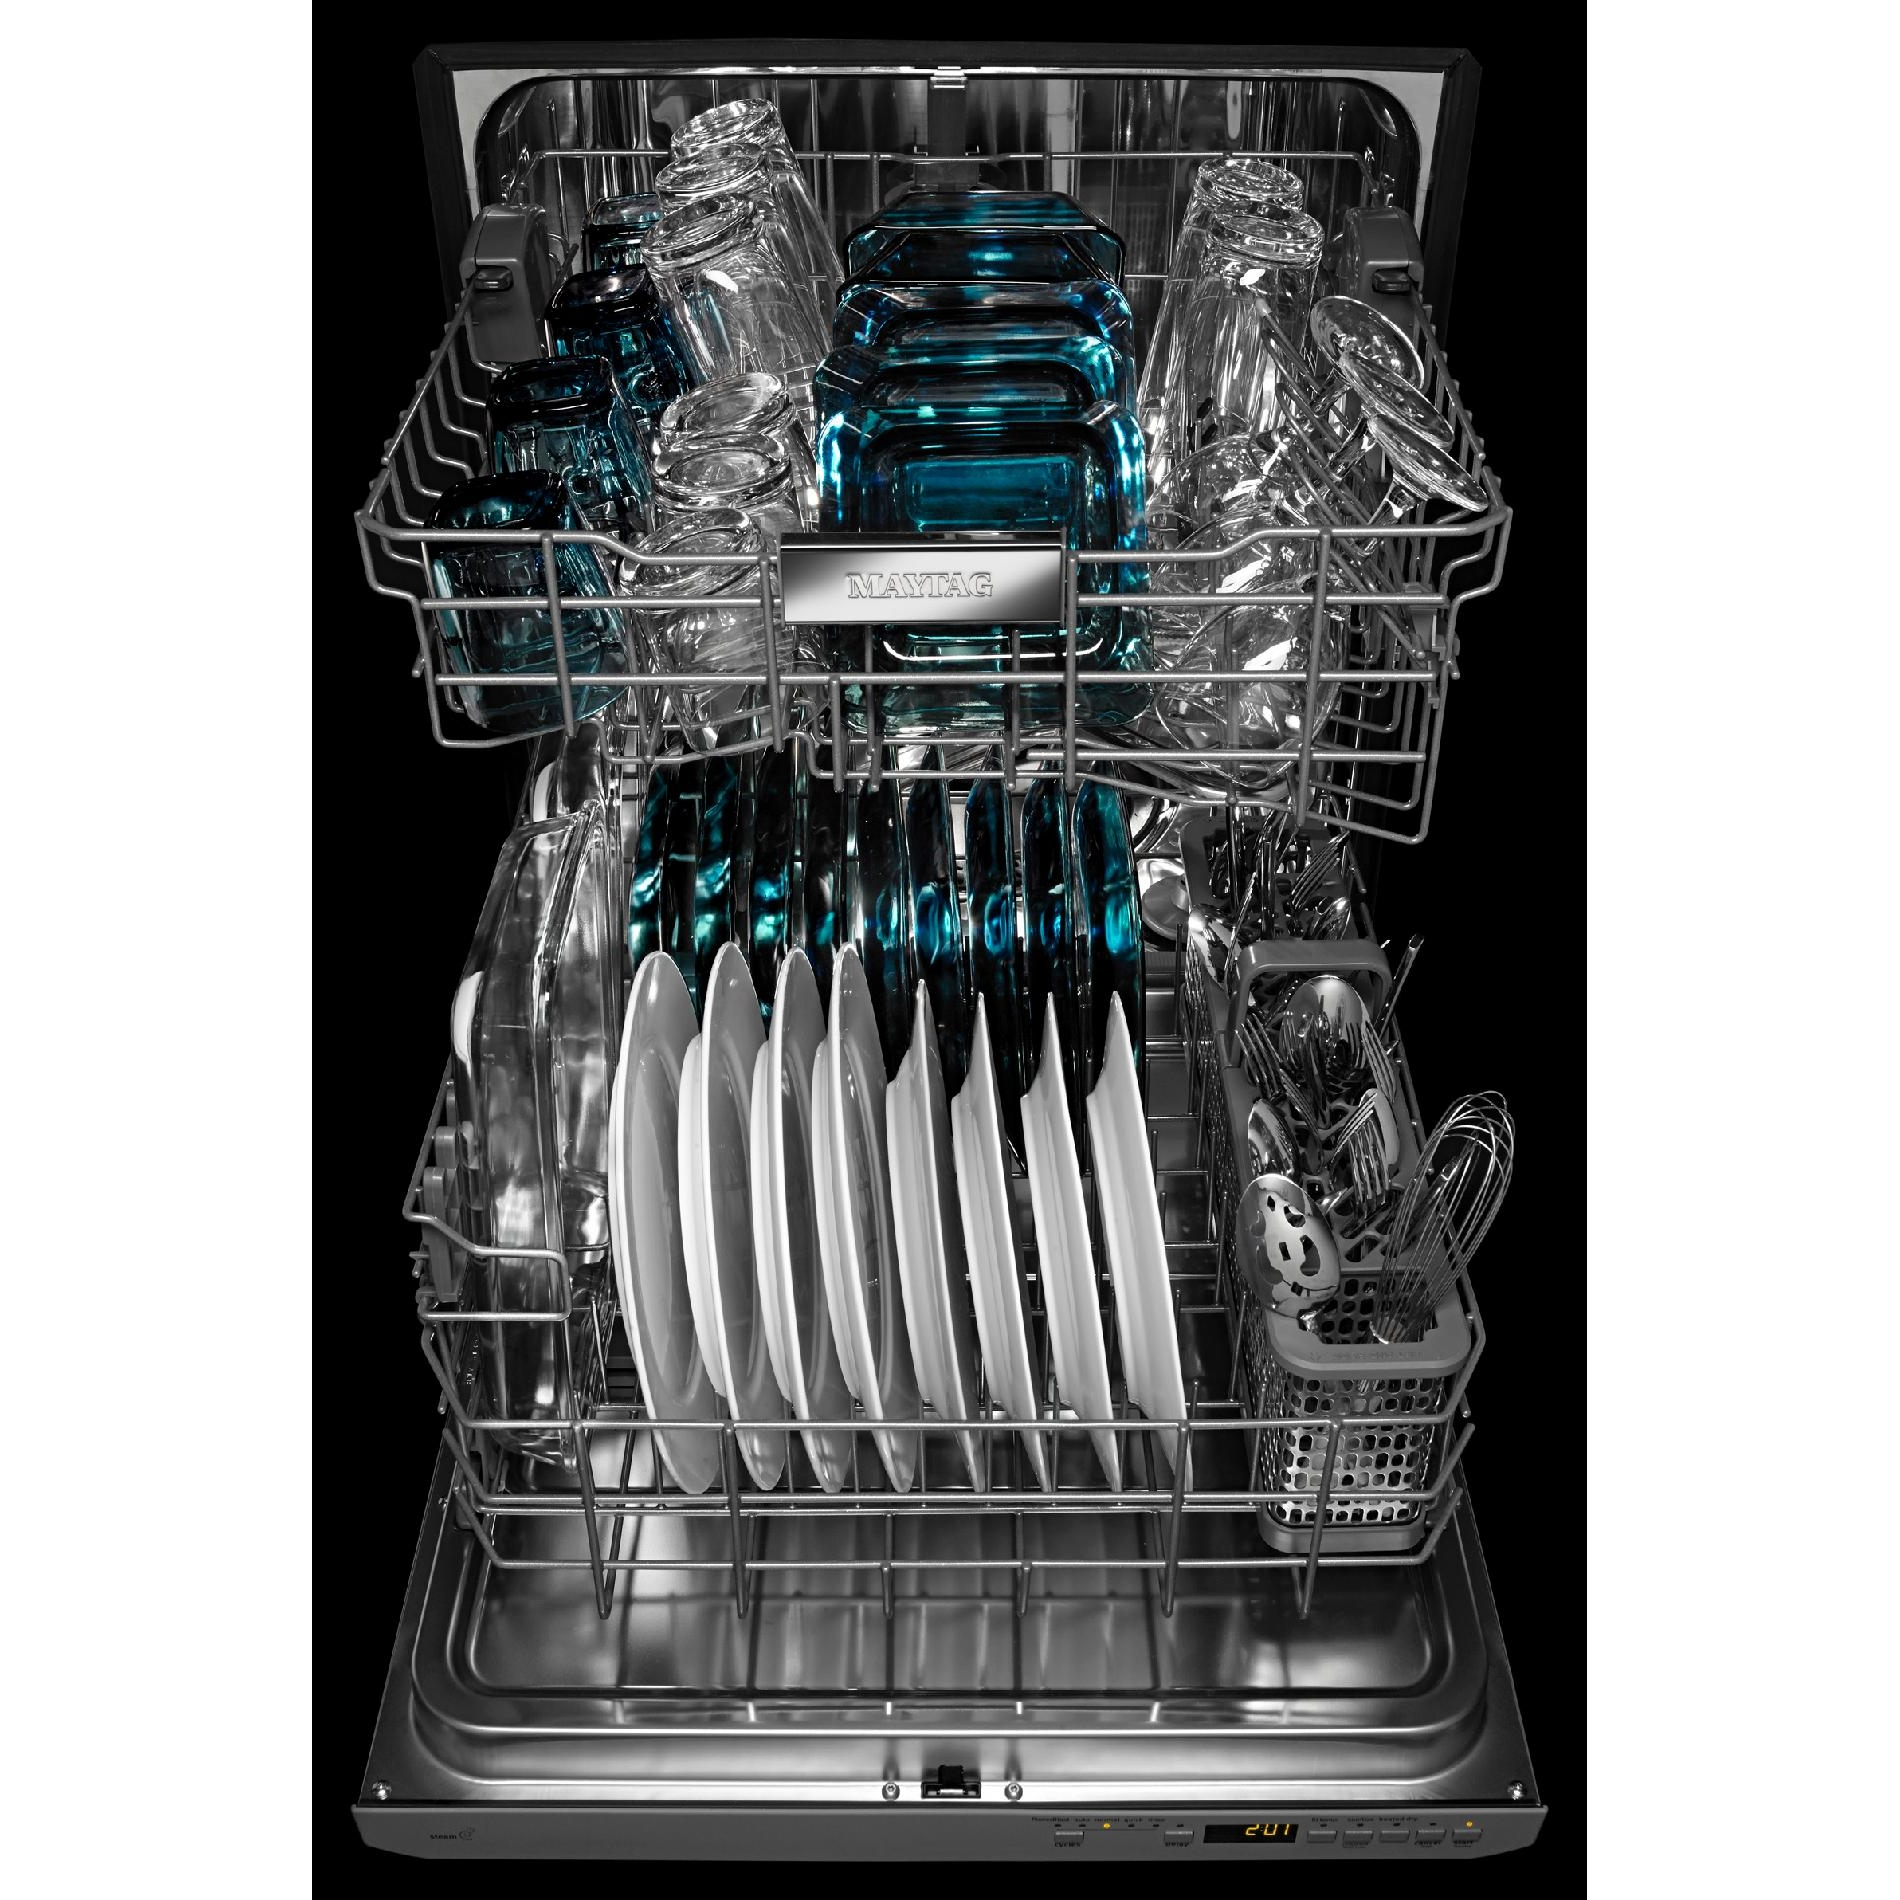 "Maytag MDB8969SDM 24"" Built-In Dishwasher w/ Stainless Steel Silverware Basket - Stainless Steel"